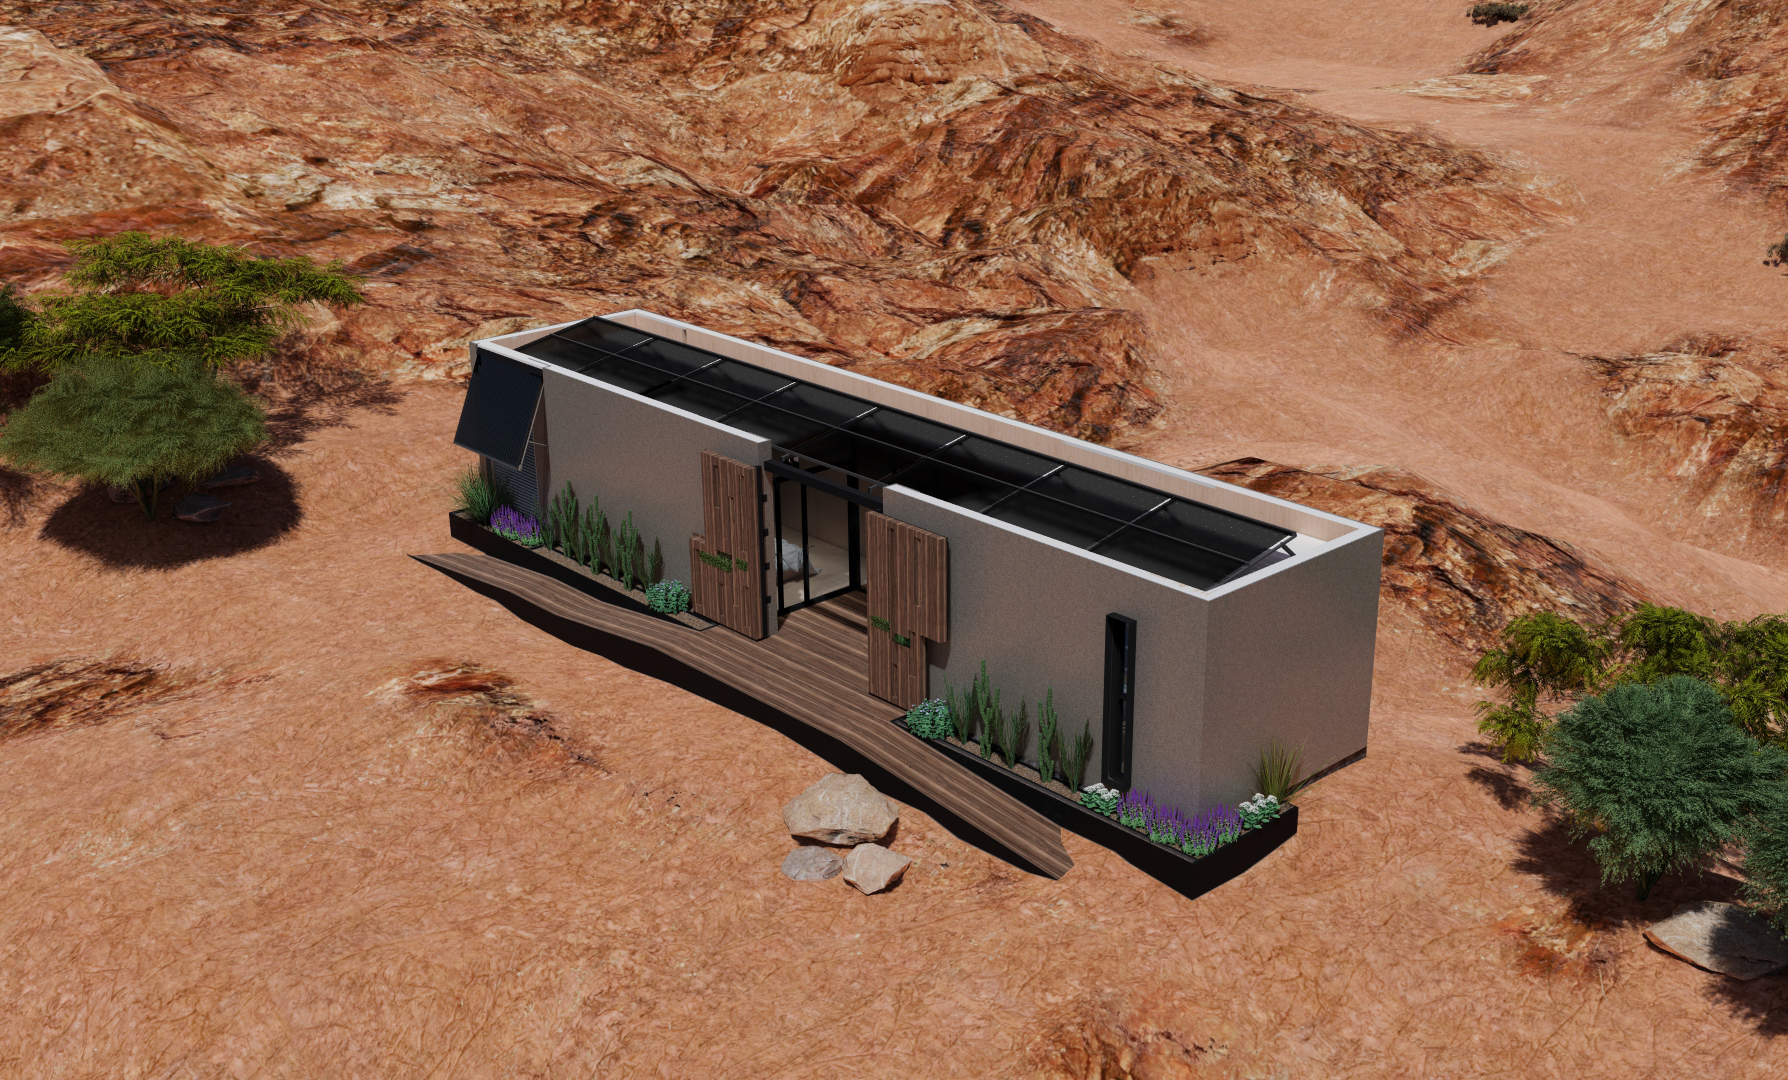 A rendering of the Mojave Bloom house